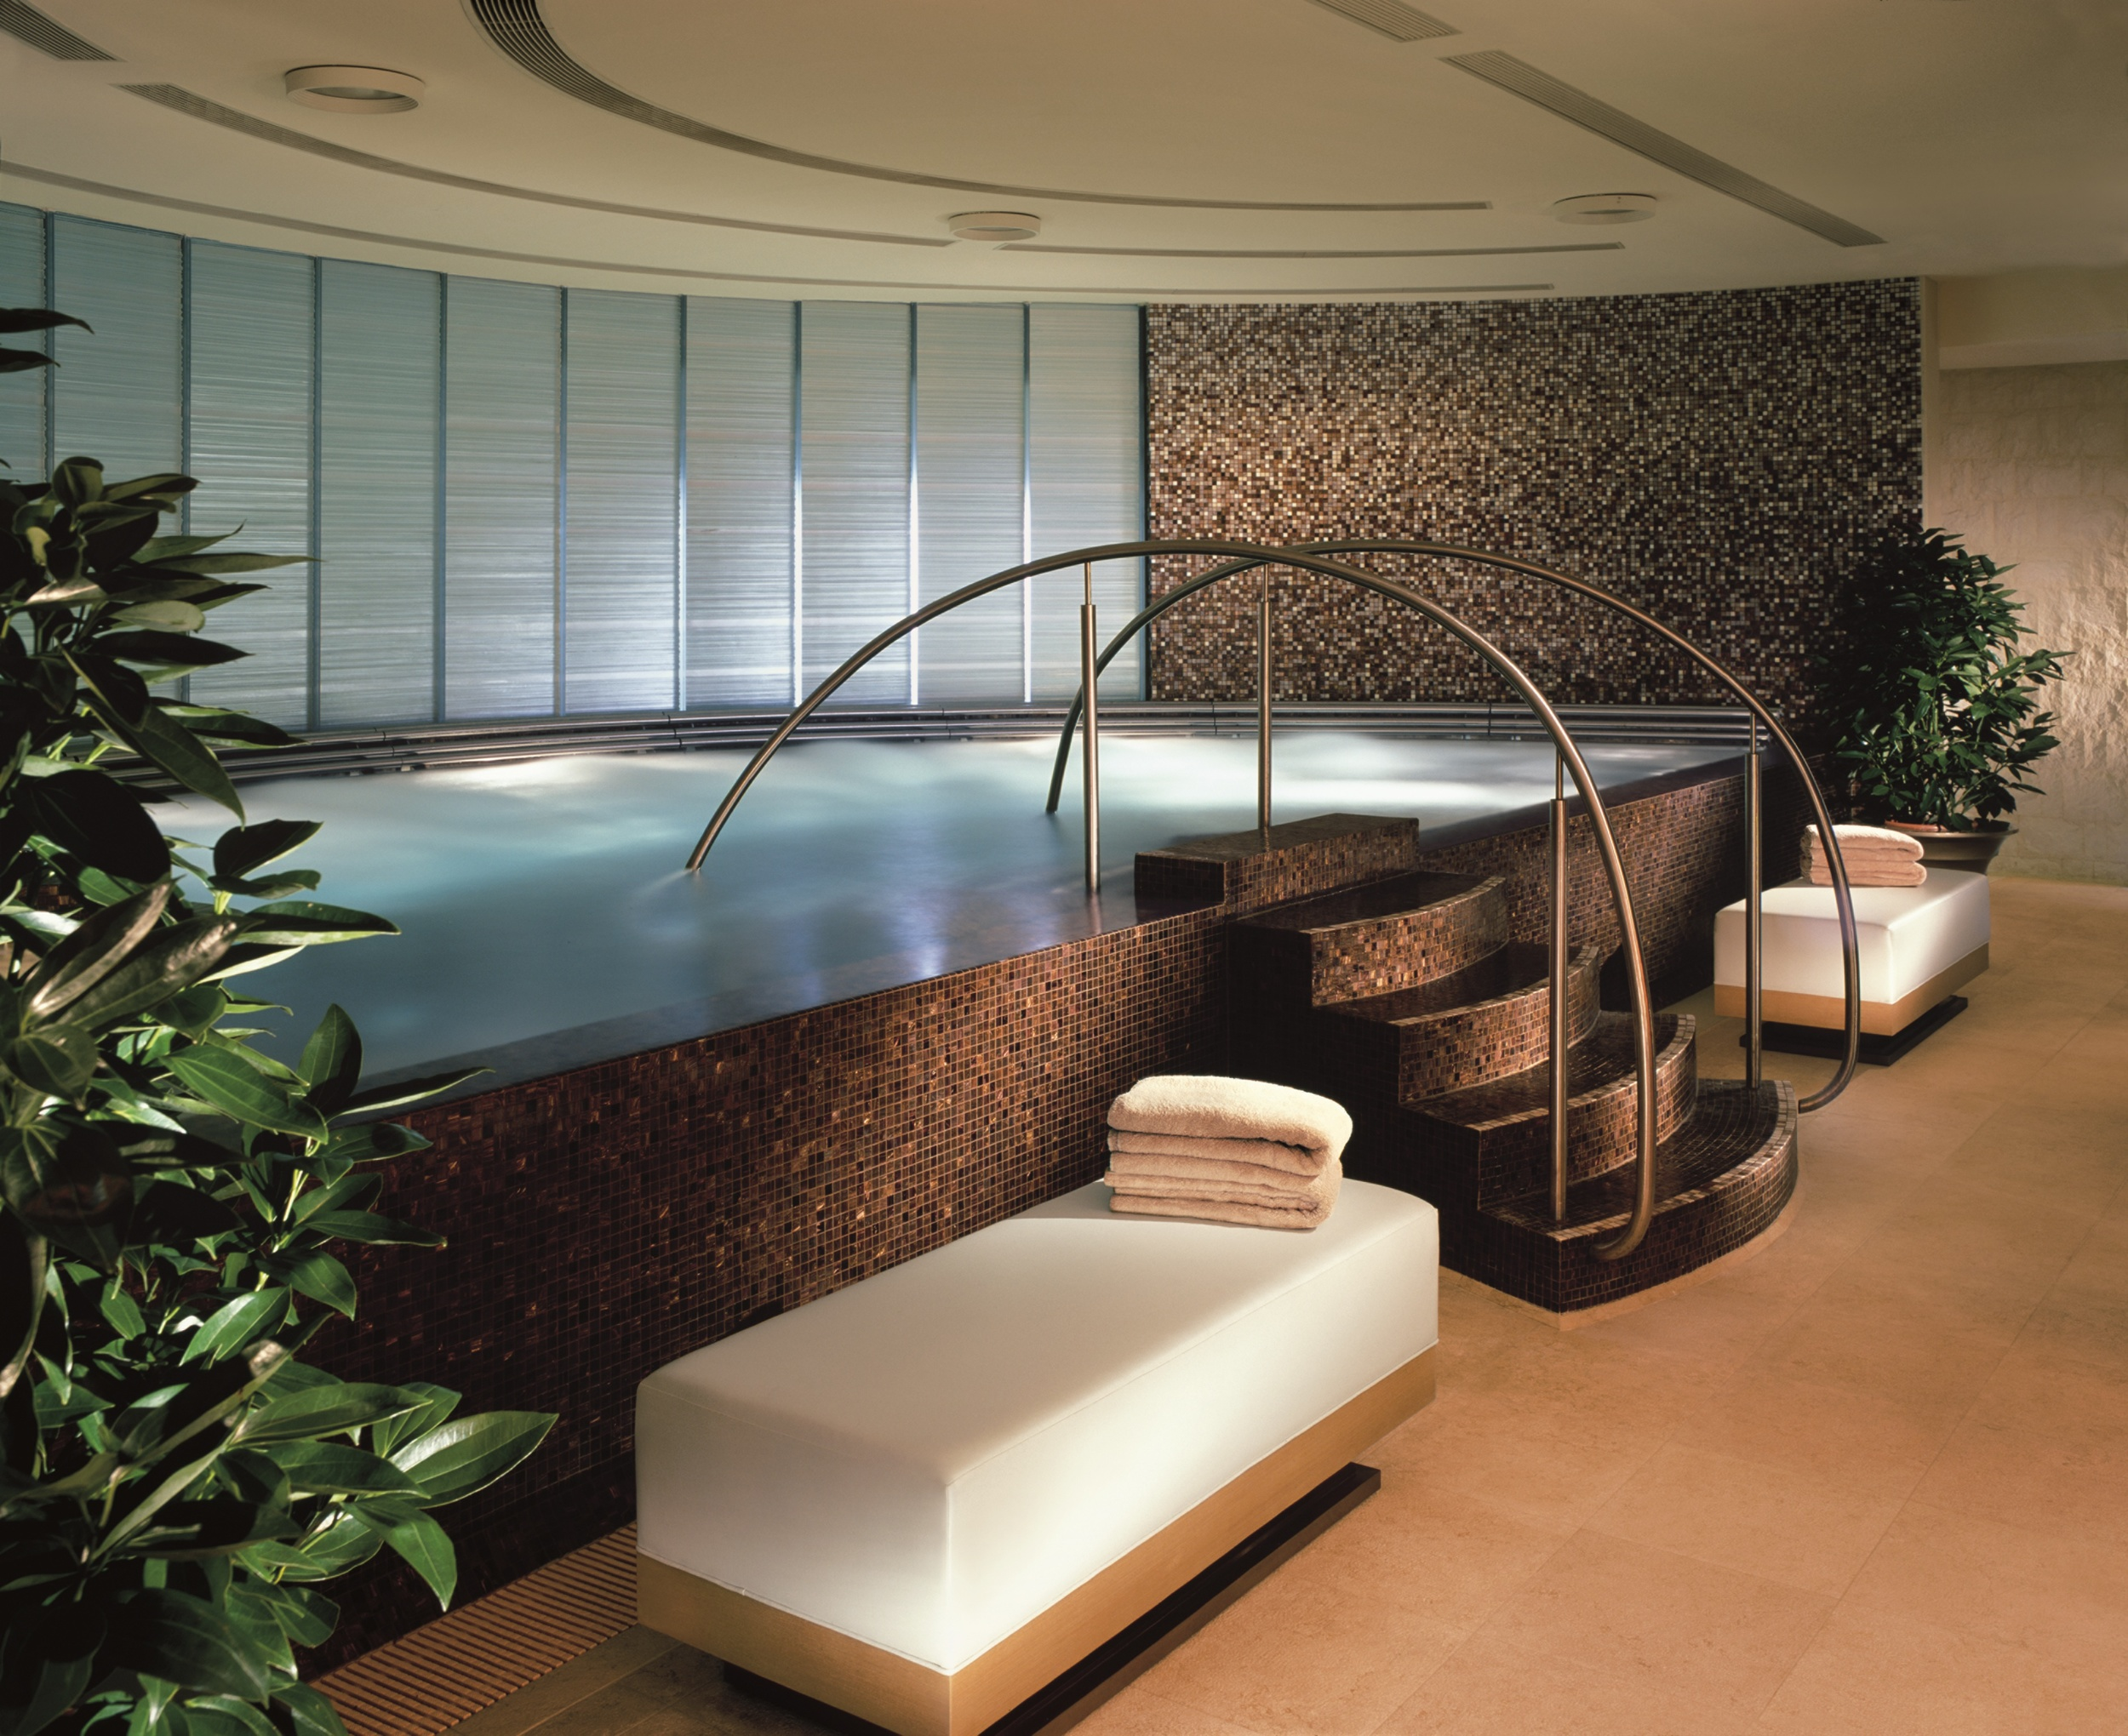 Thalassotherapy pool with chi water in the Spa